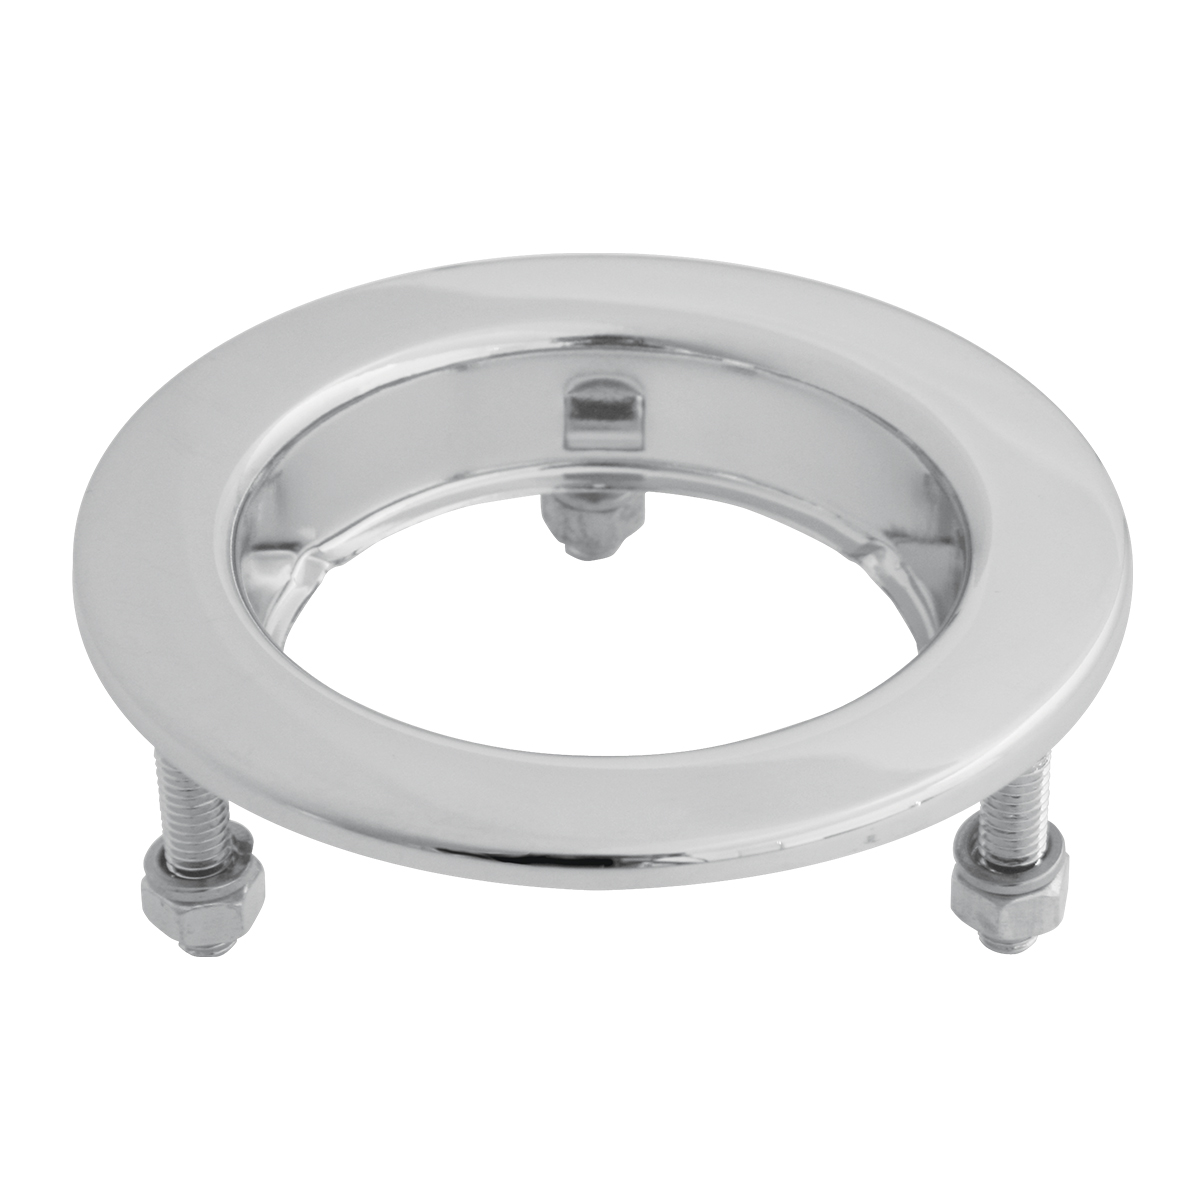 "Flange Mount Bezel with Hidden Studs for 2"" Round Light"